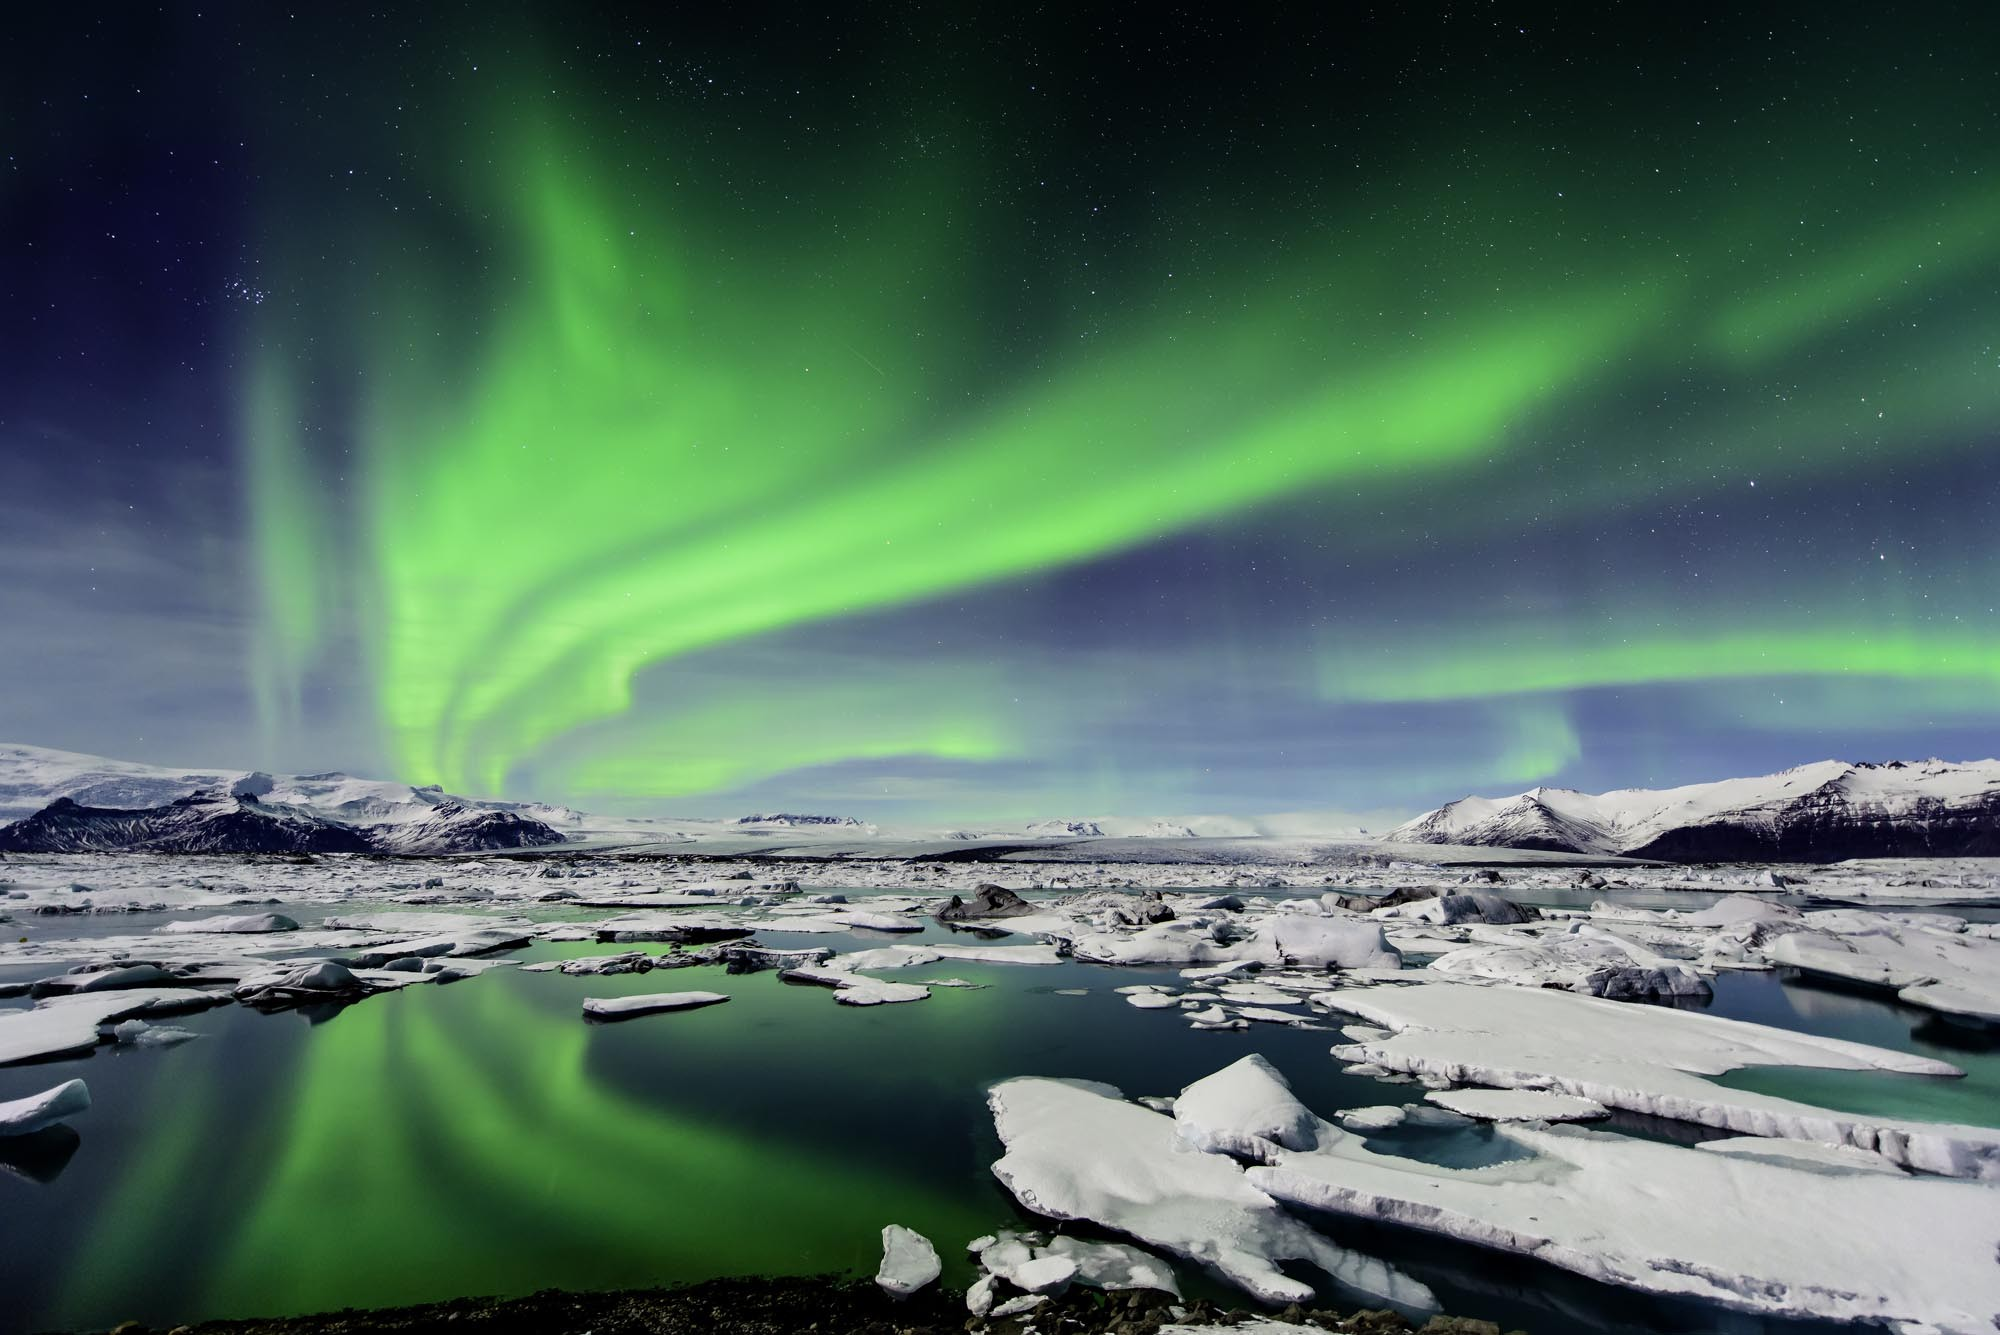 Aurora Borealis seen here in Southern Iceland